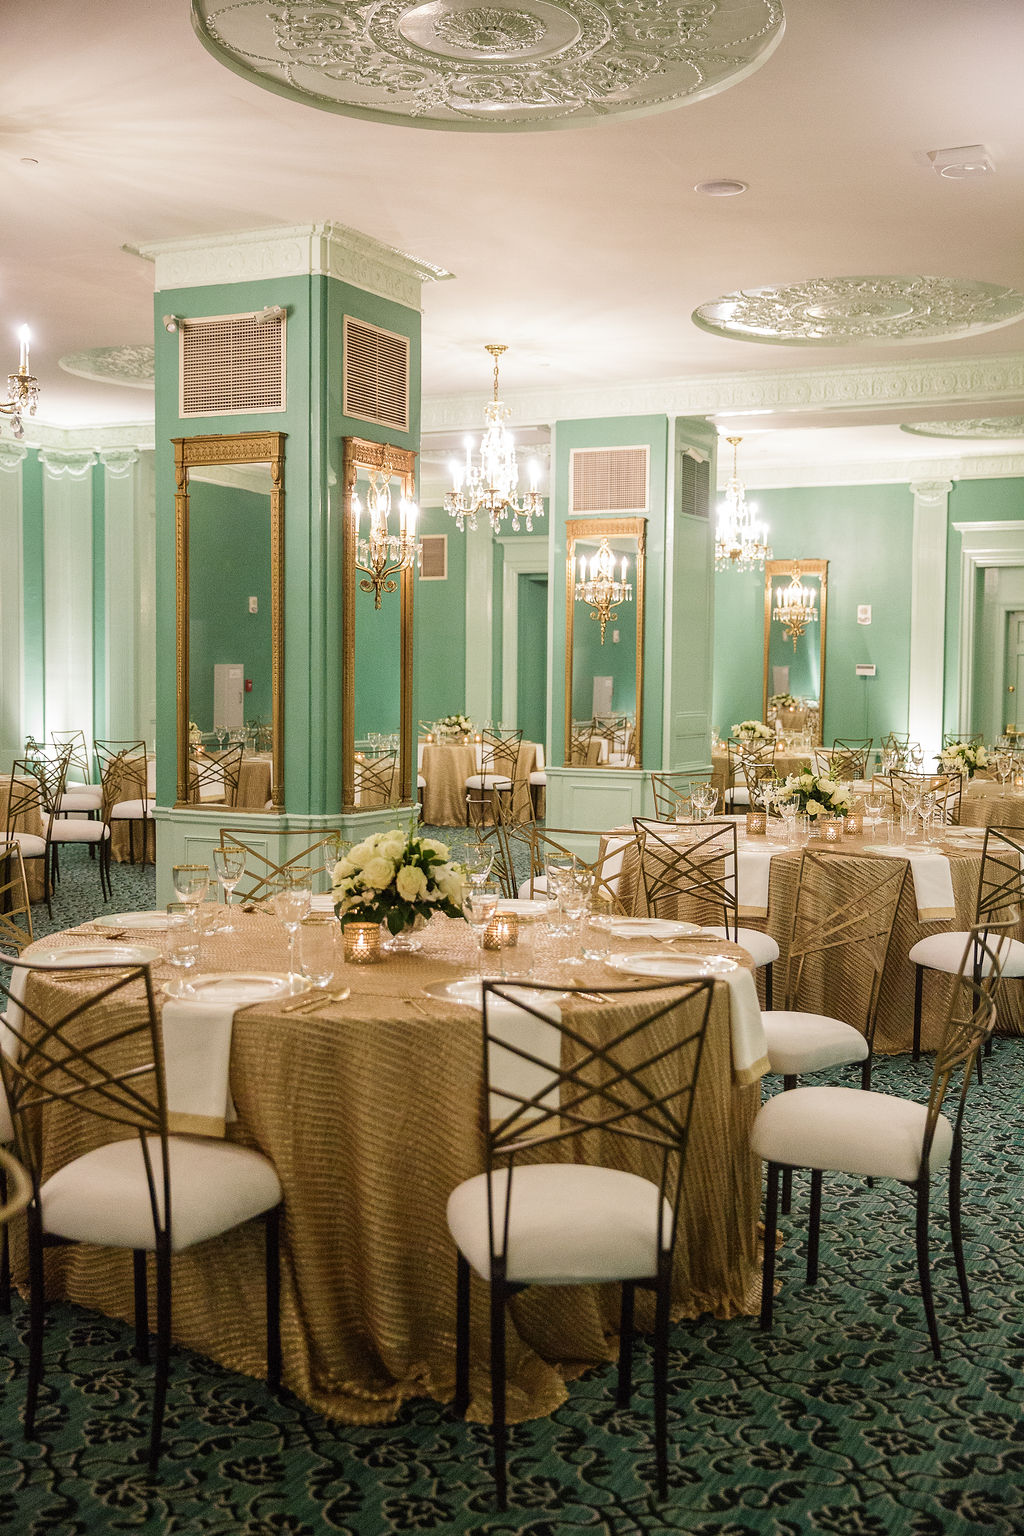 light green elegant dining rooms with mirrors on each column, patterned floor, and tables decorated with gold tablecloths